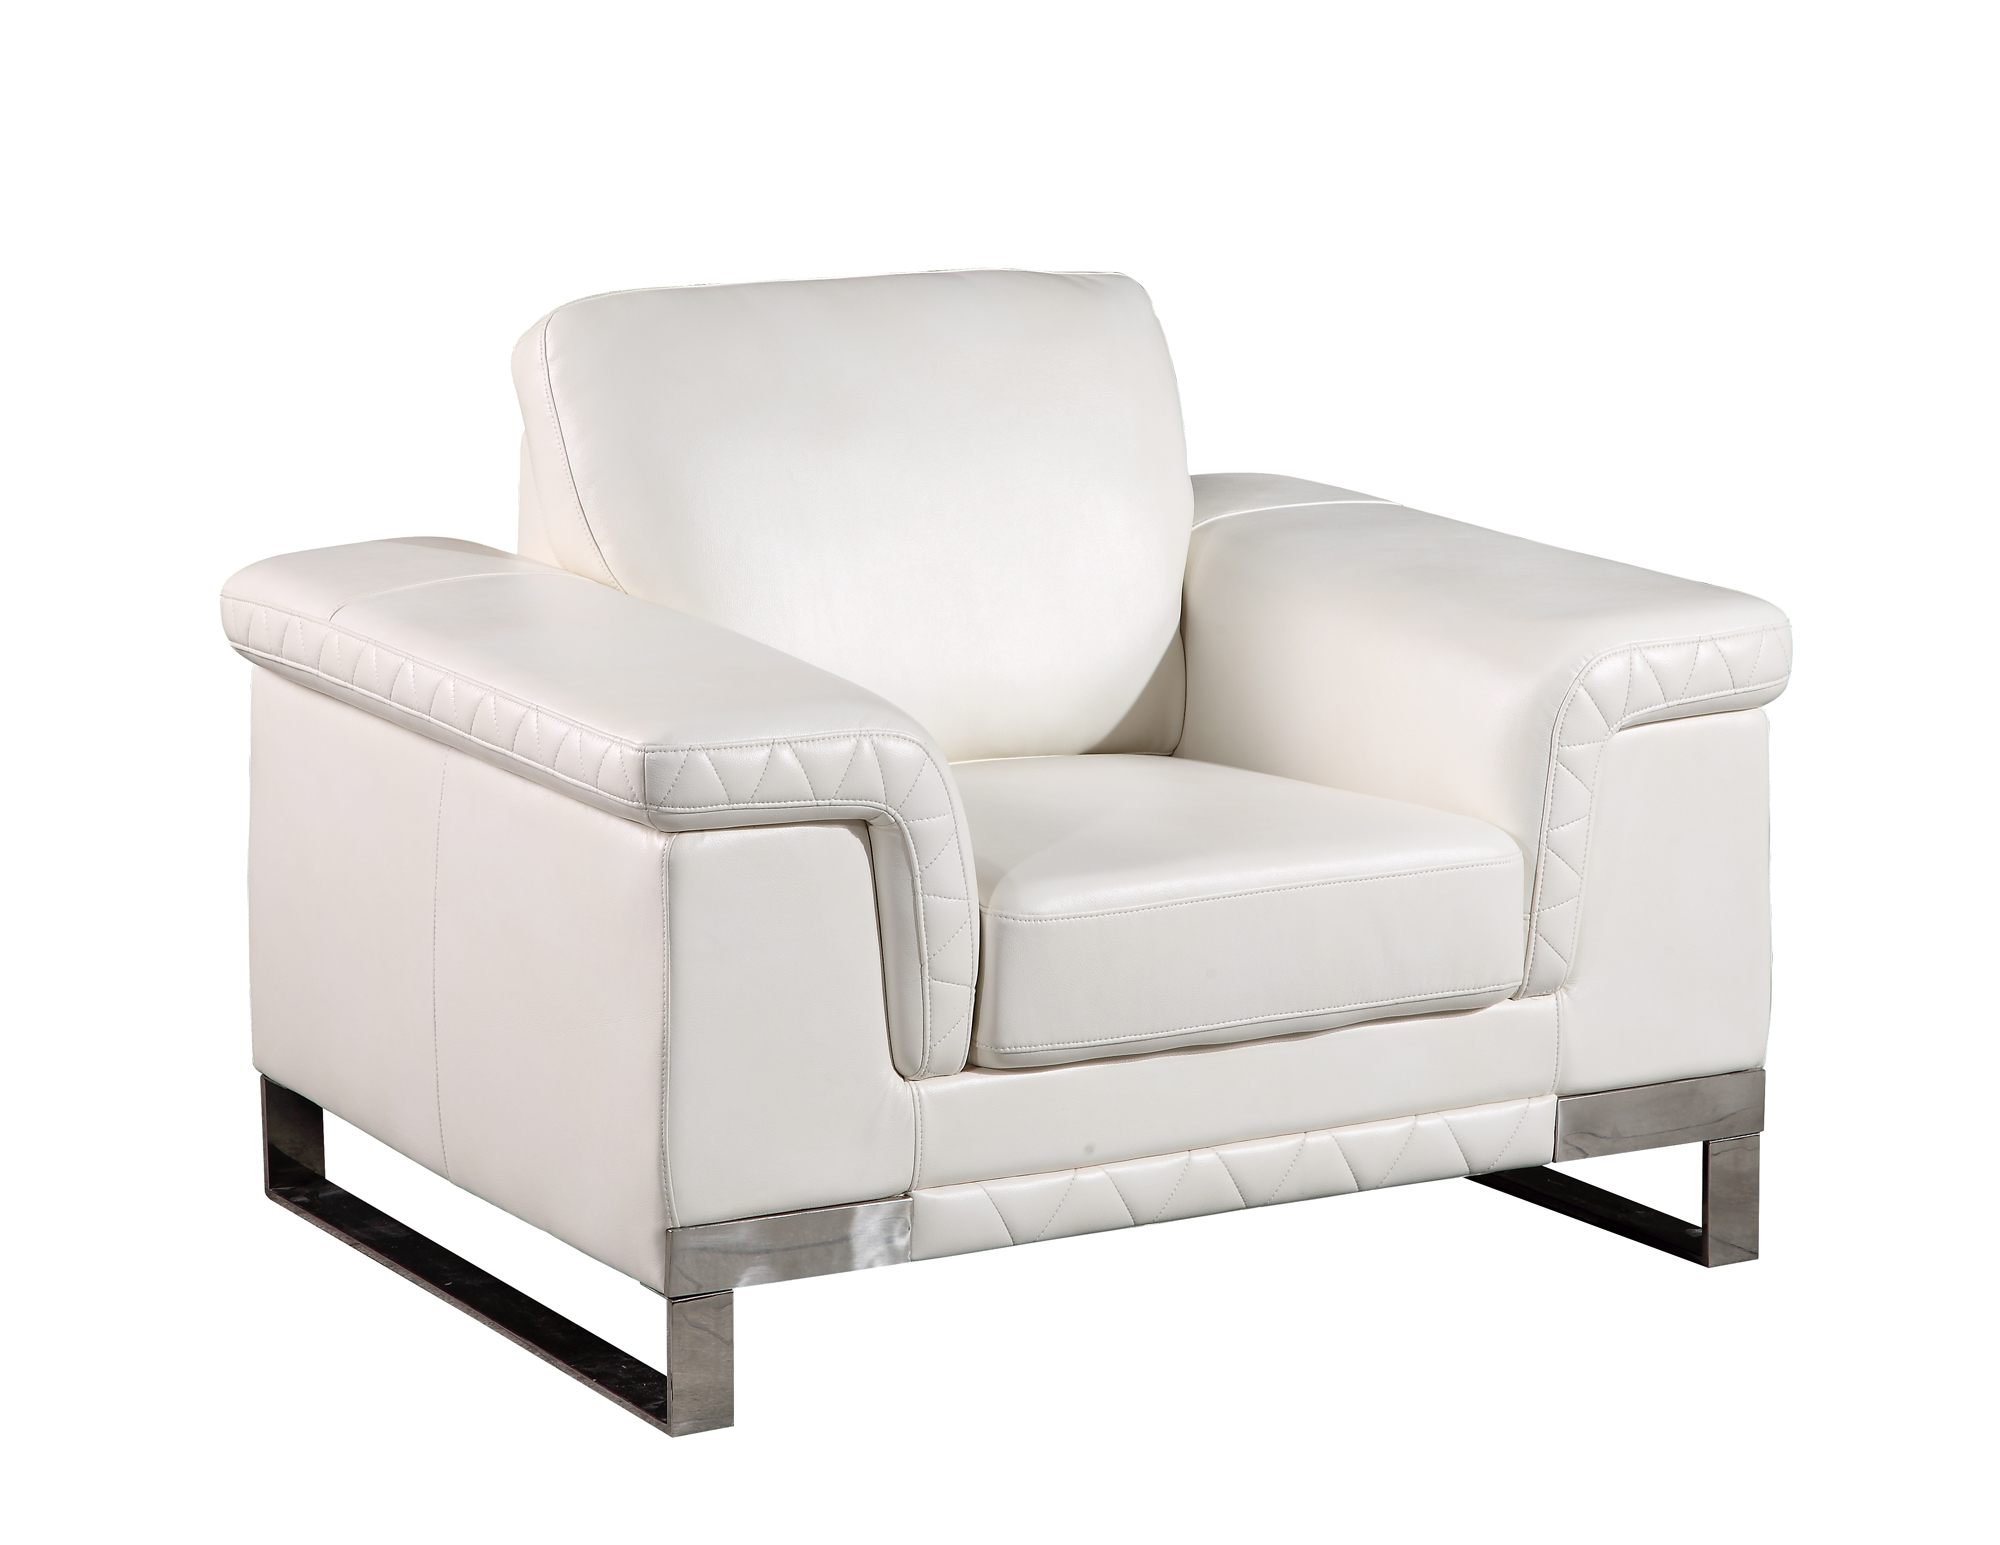 U7660 white leather gel chair by global furniture for White leather sofa and chair